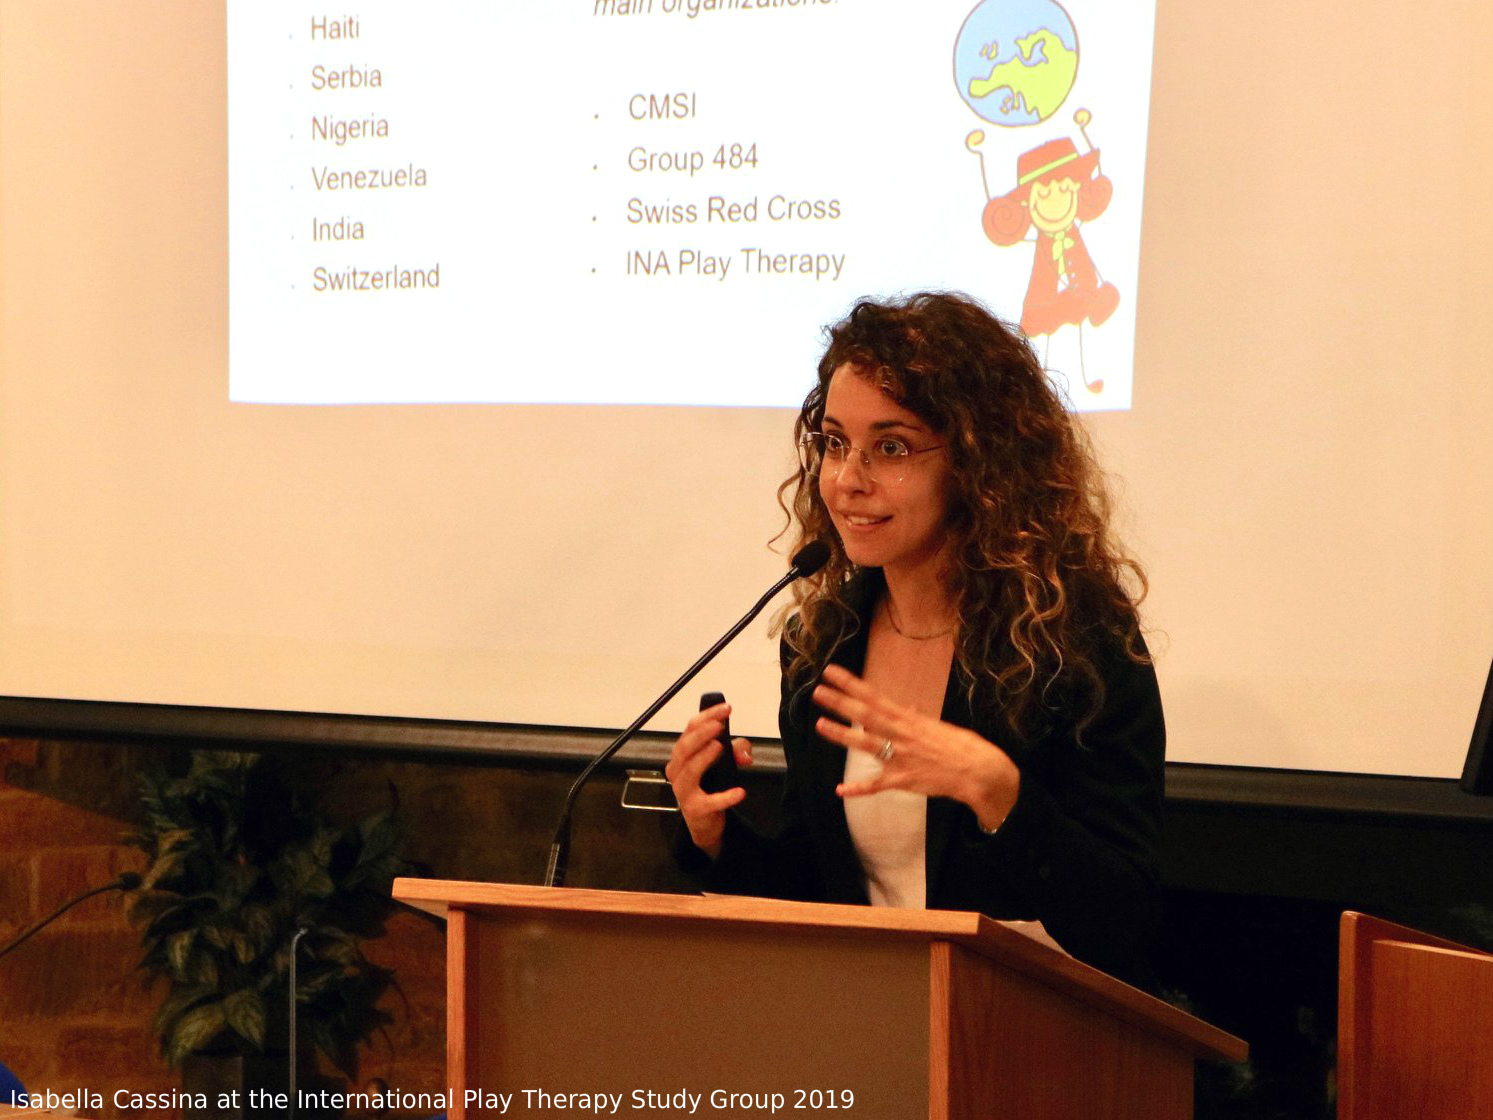 isabella cassina presenta all'international play therapy study group di charles schaefer